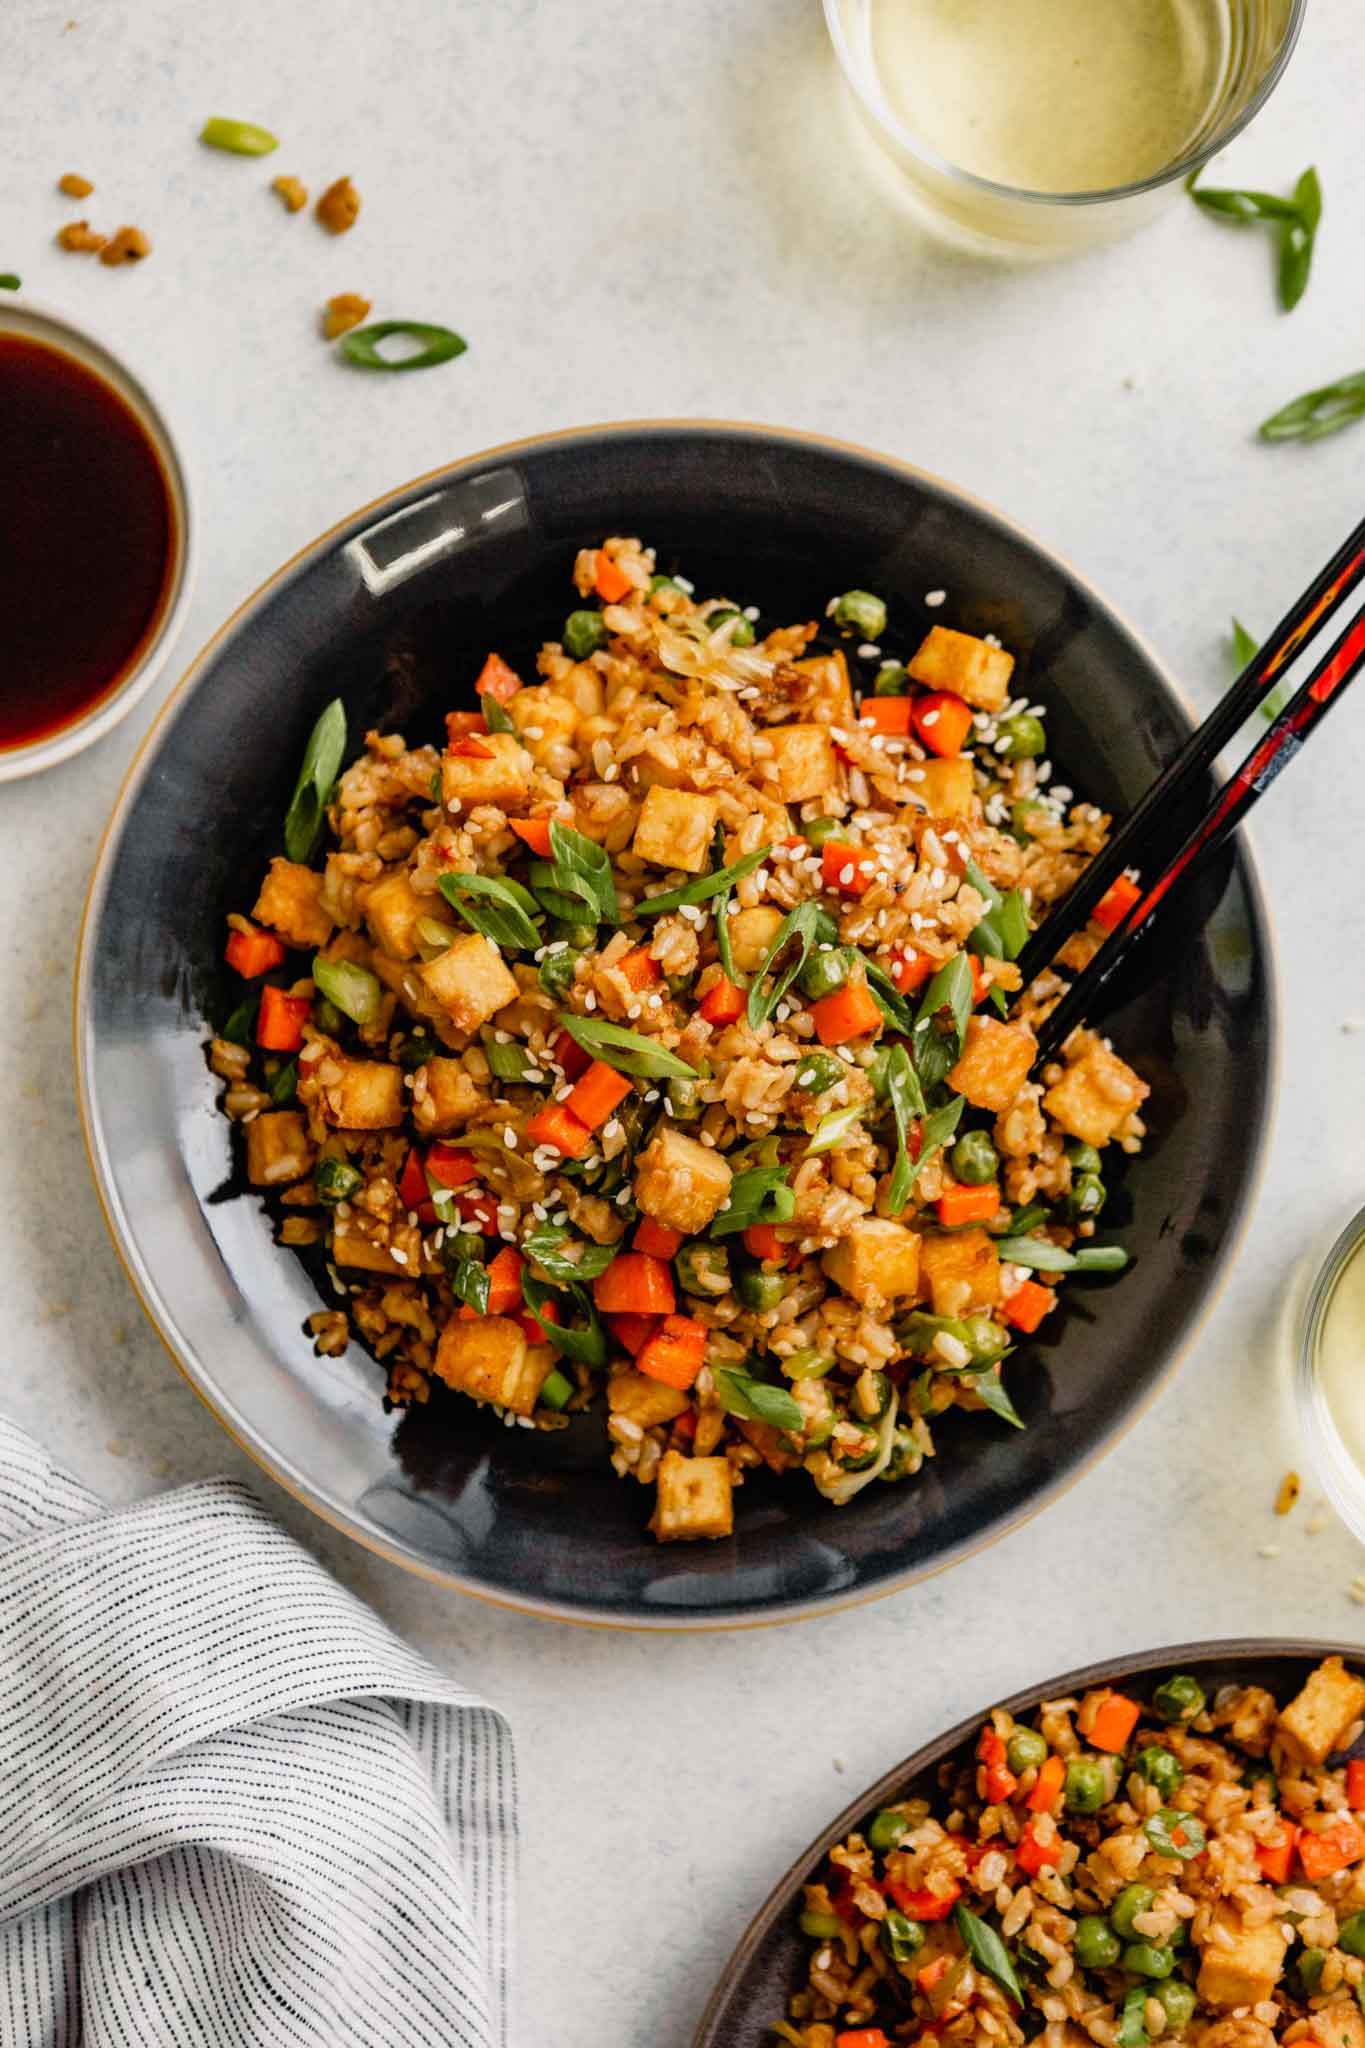 fried rice in a large blue bowl with chopsticks